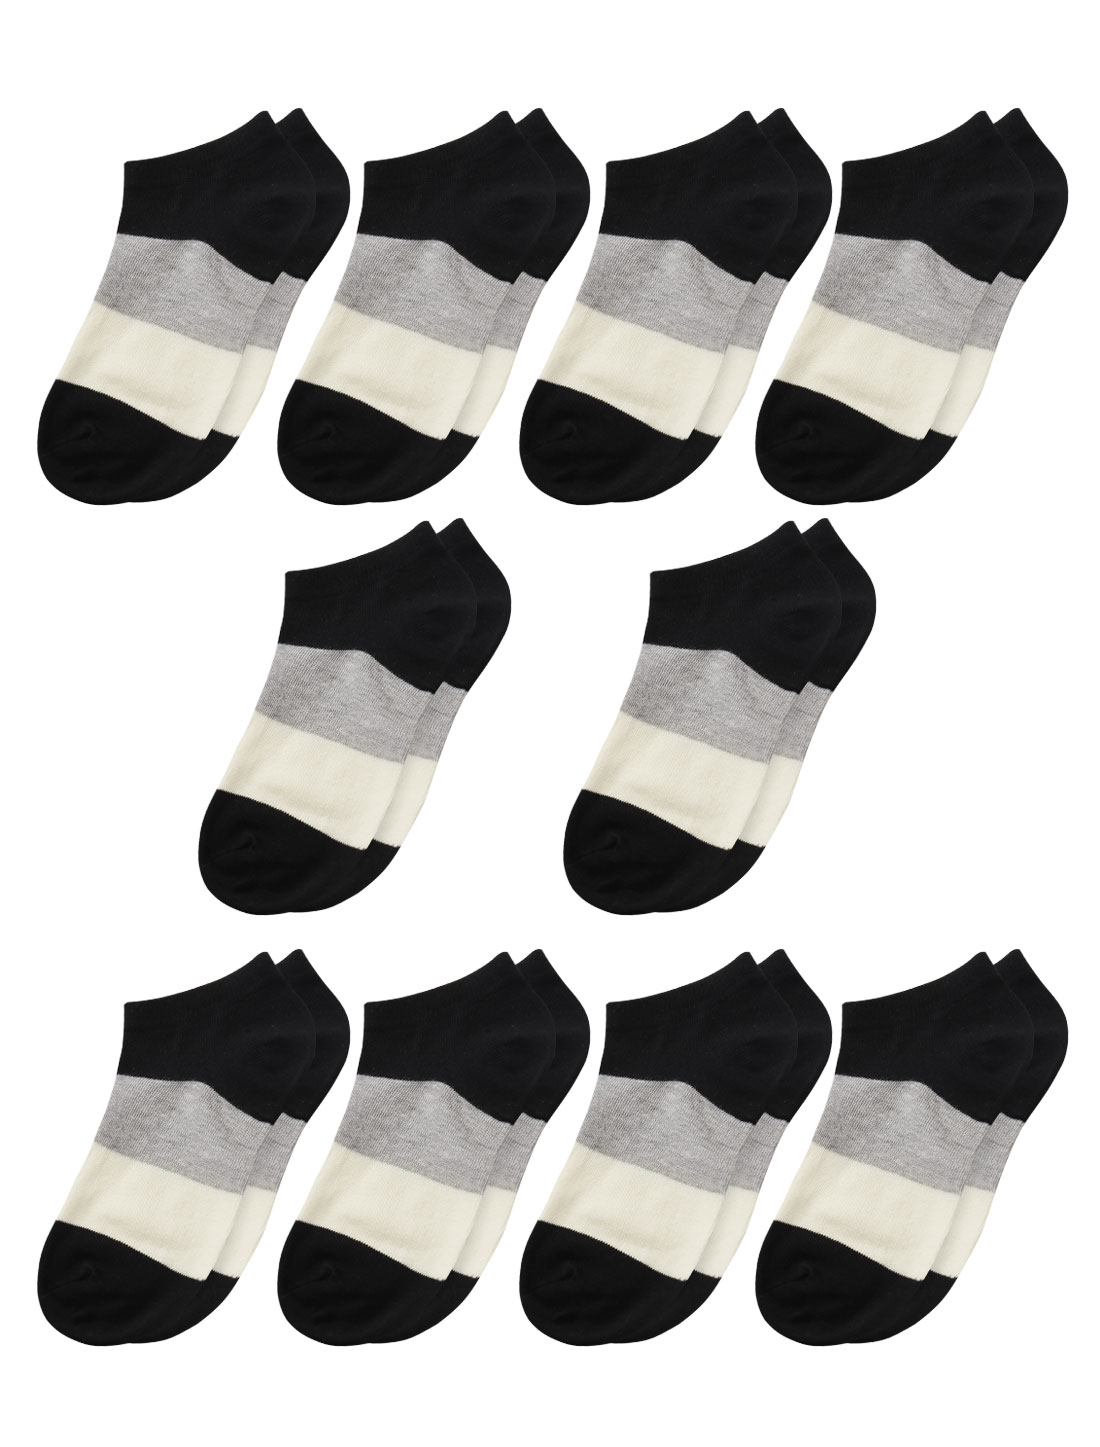 Women Low Cut Ankle Length Color Block Short Socks 10 Pairs Black 9-11